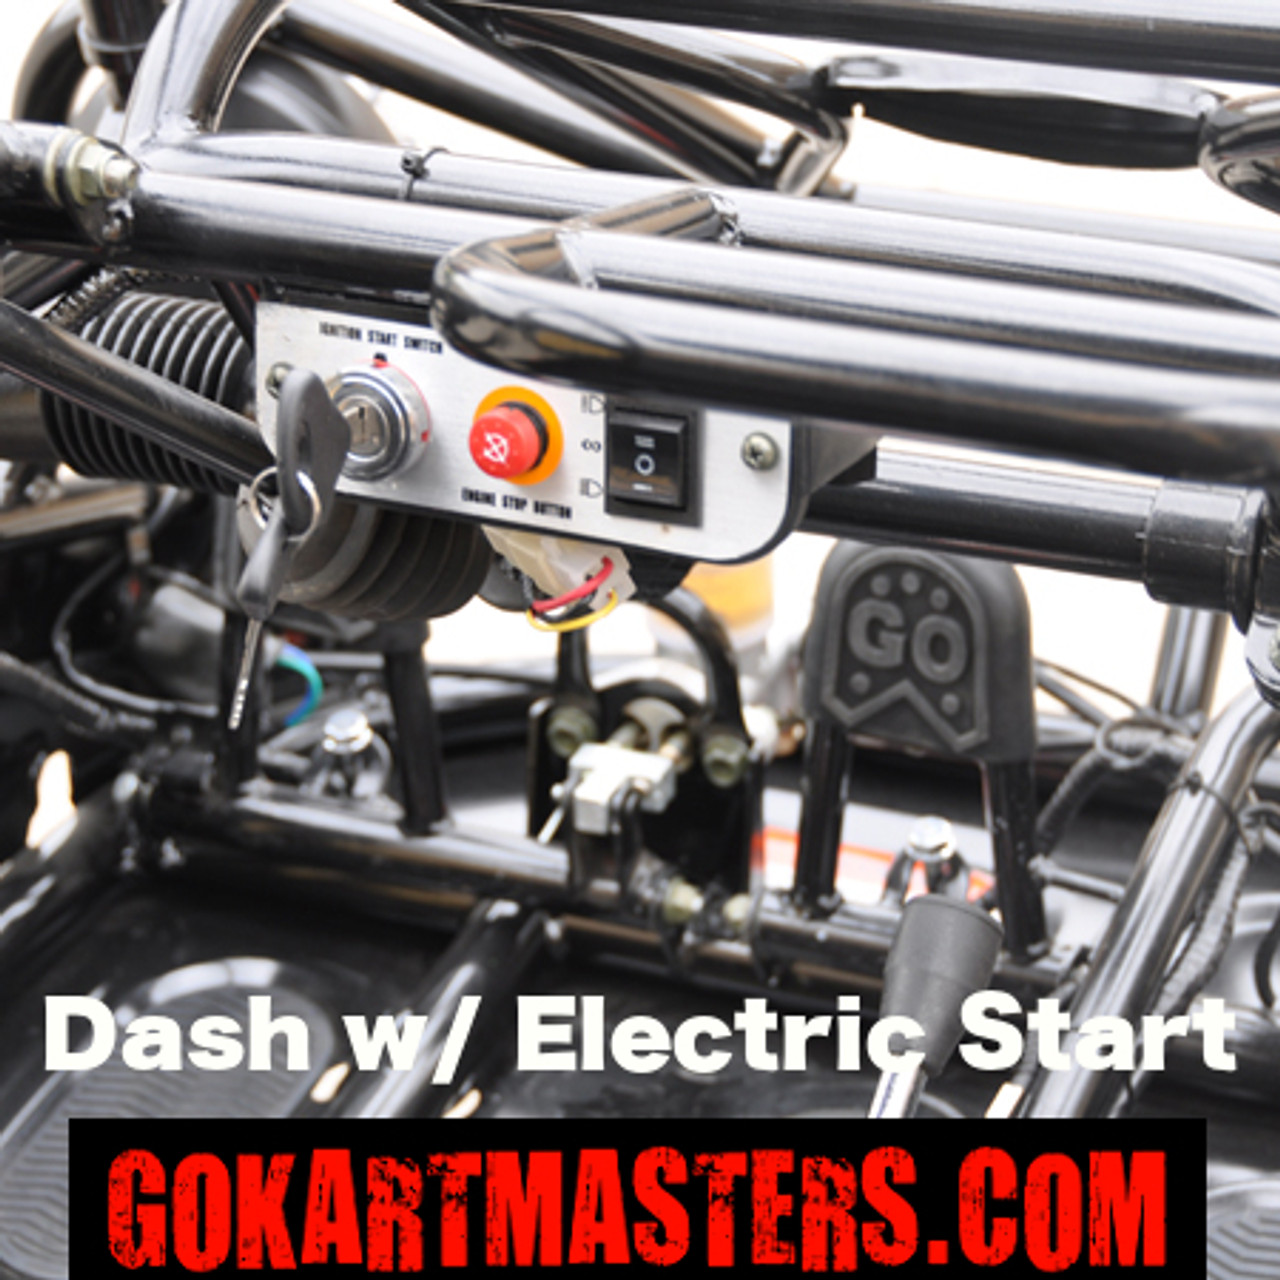 TrailMaster 150 XRX Go-Kart - Dash w/ Electric Start